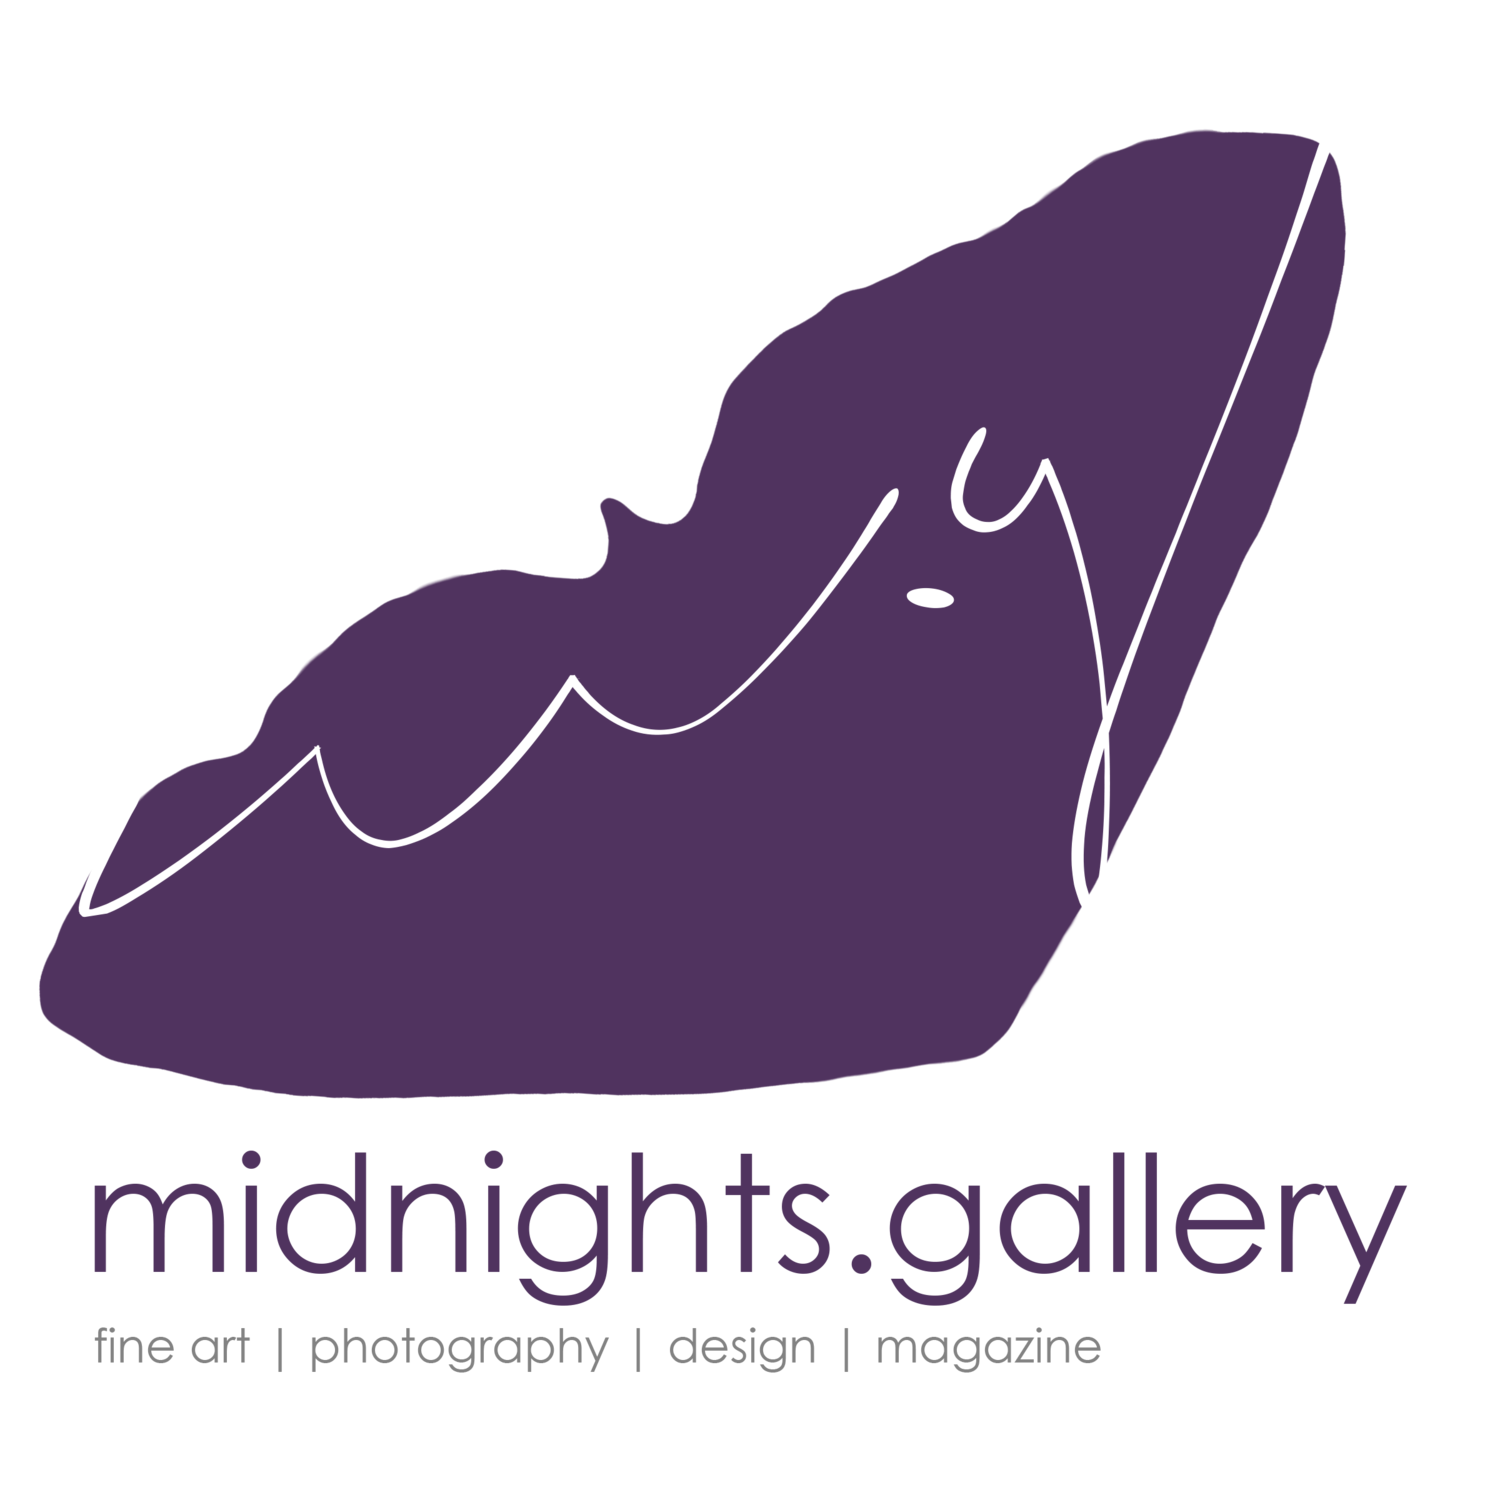 midnights.gallery